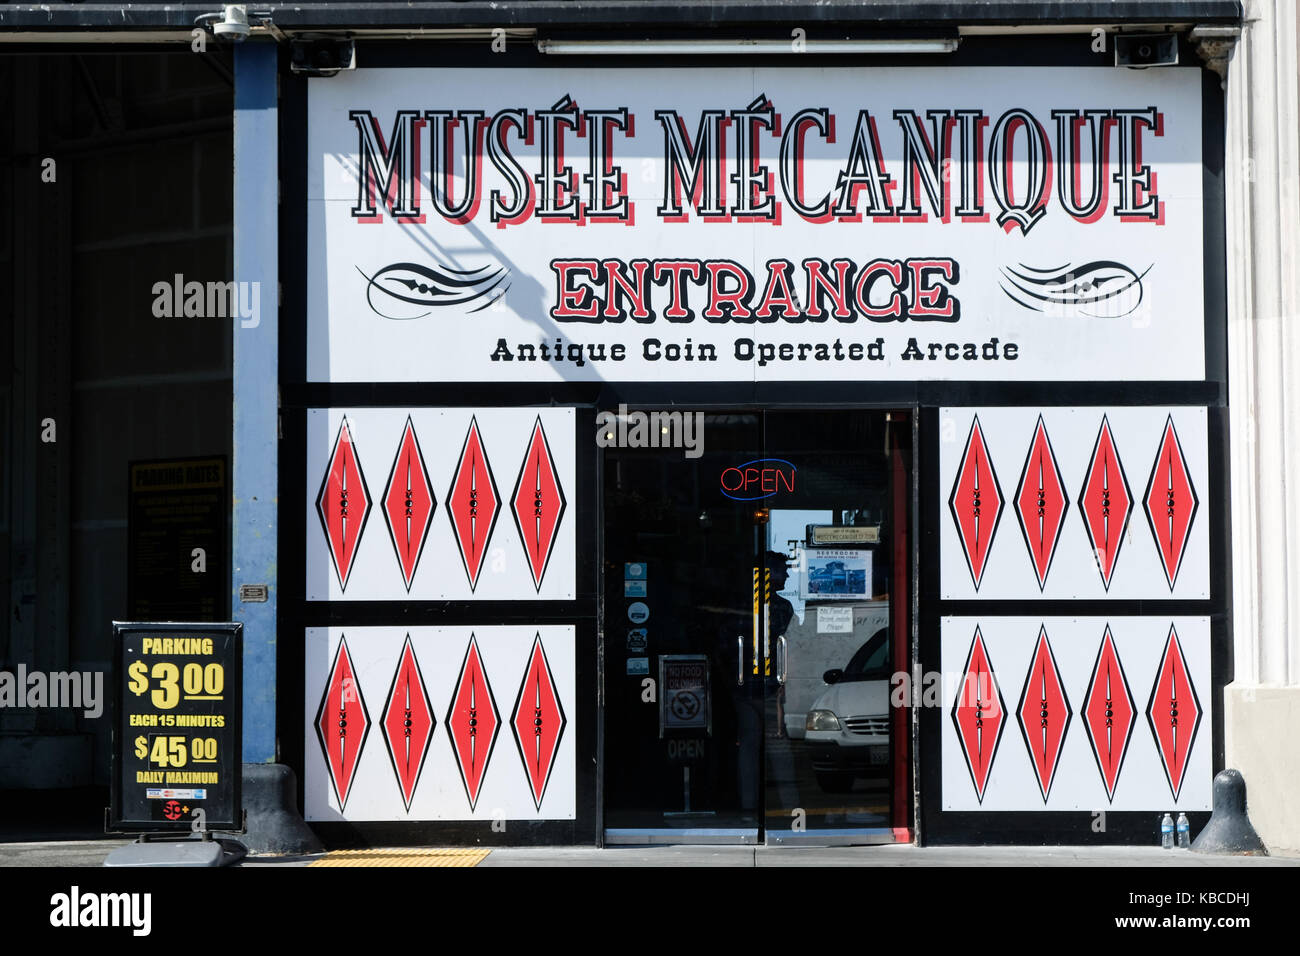 The Musee Mecanique museum of arcade machines in San Francisco, California, USA. - Stock Image